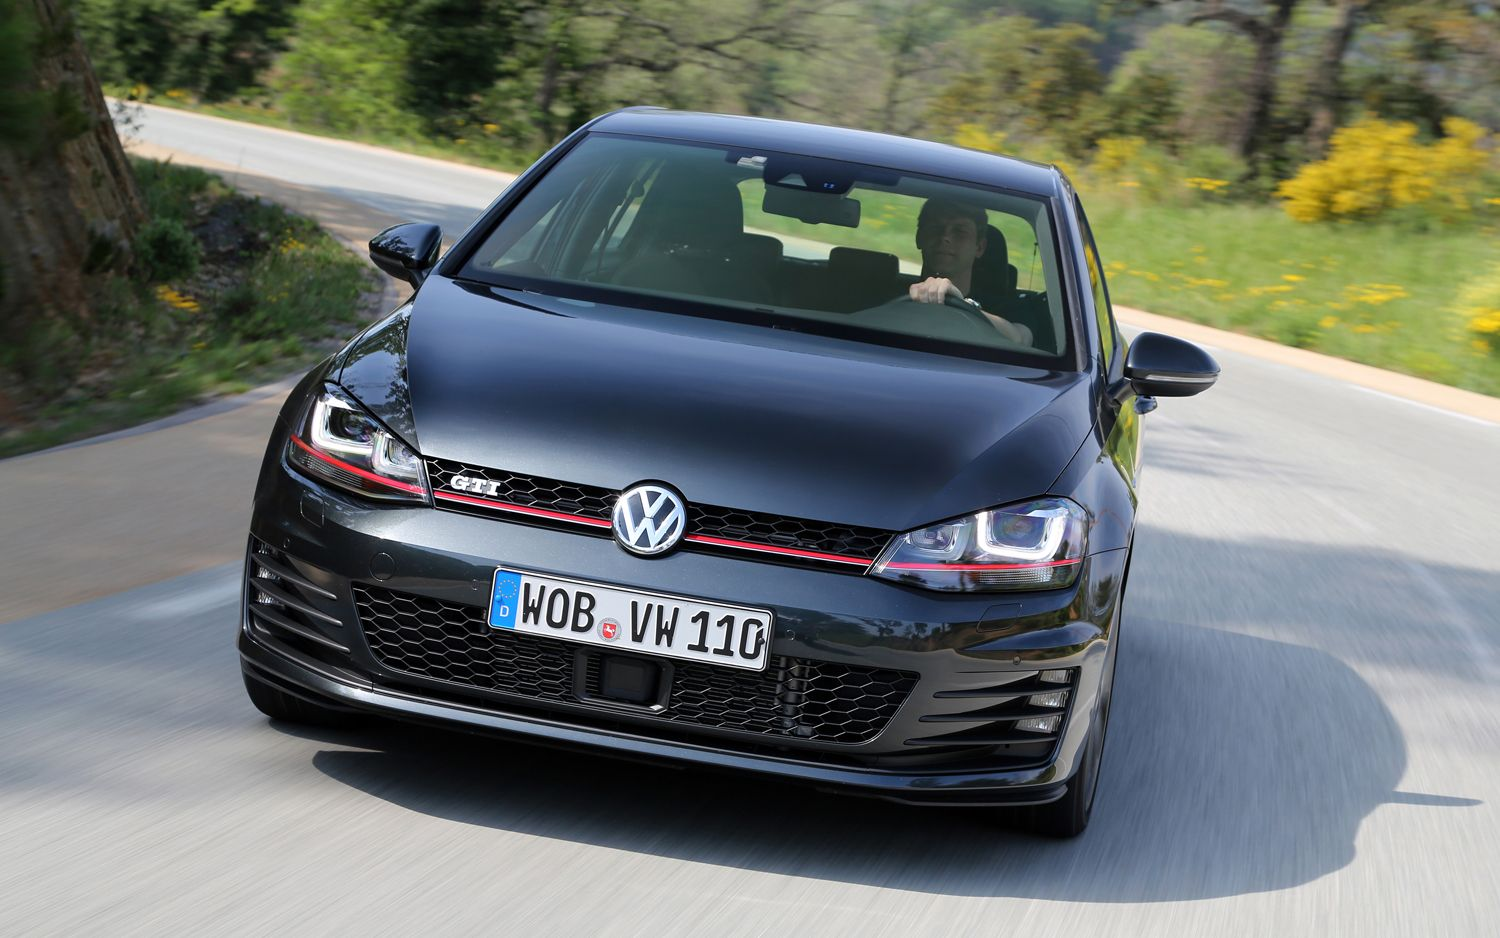 golf gti 2015 black google search cars motorcycles pinterest volkswagen and cars. Black Bedroom Furniture Sets. Home Design Ideas